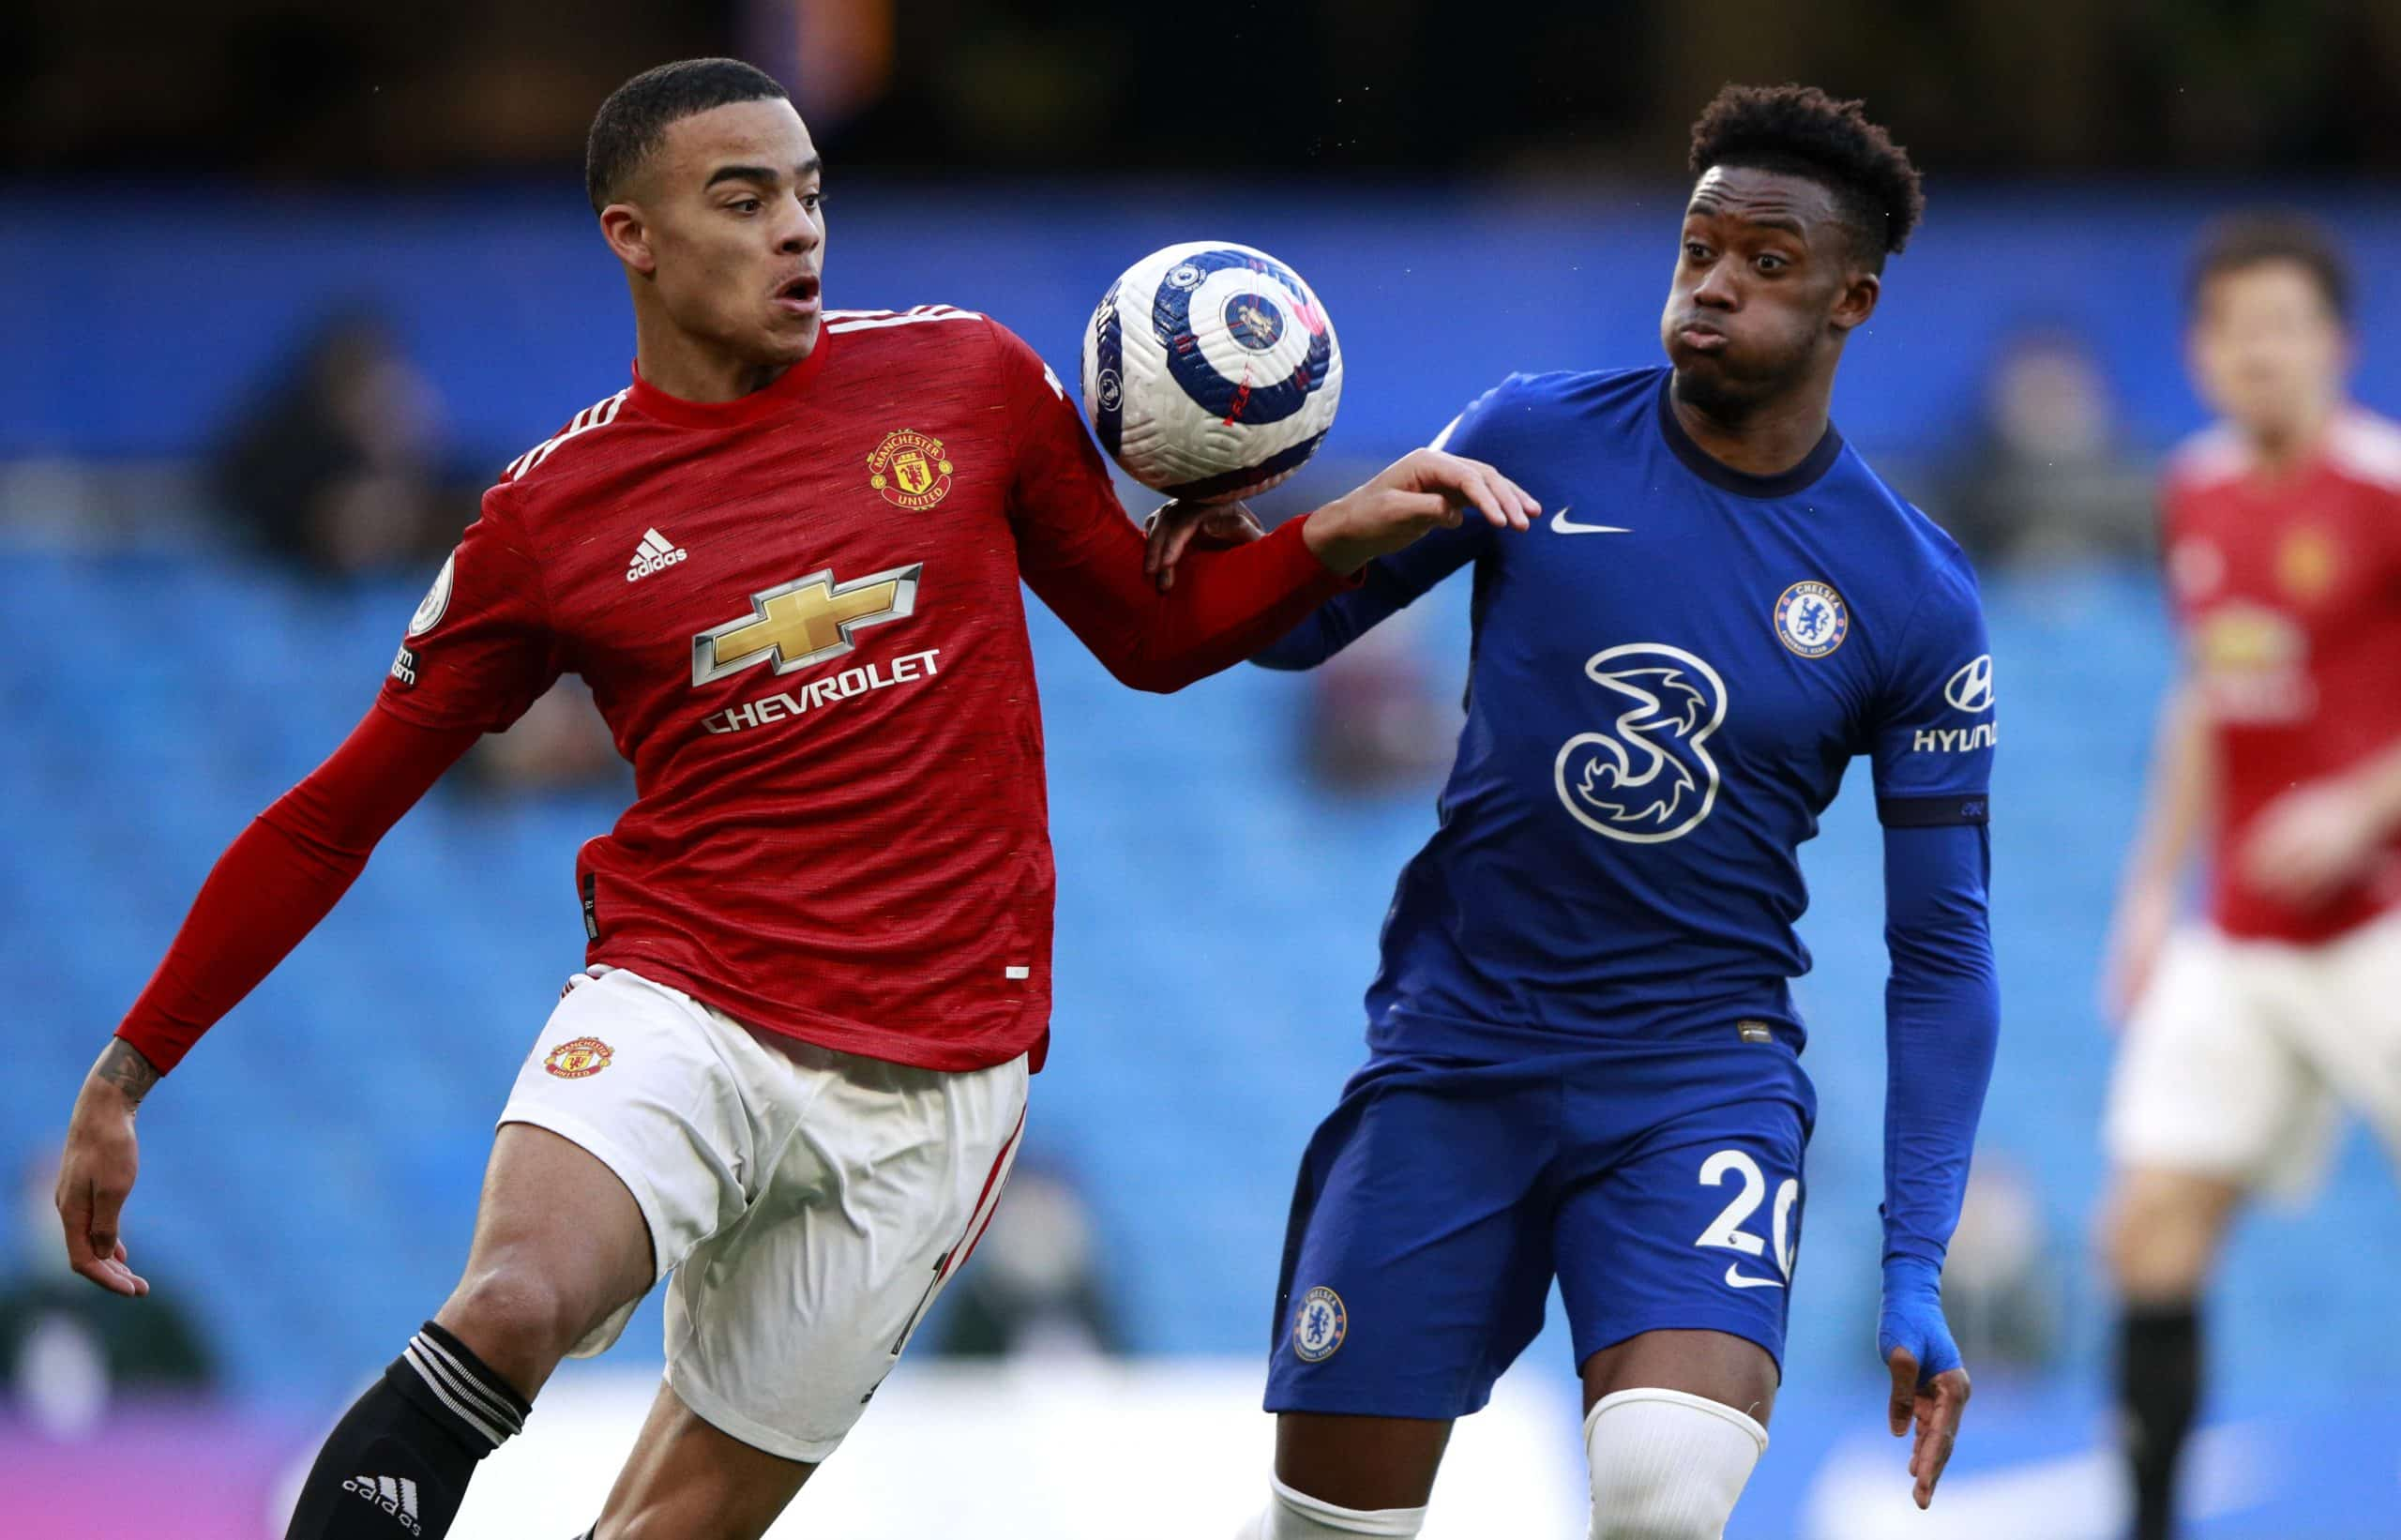 Chelsea vs Everton betting tips: Preview, predictions & odds